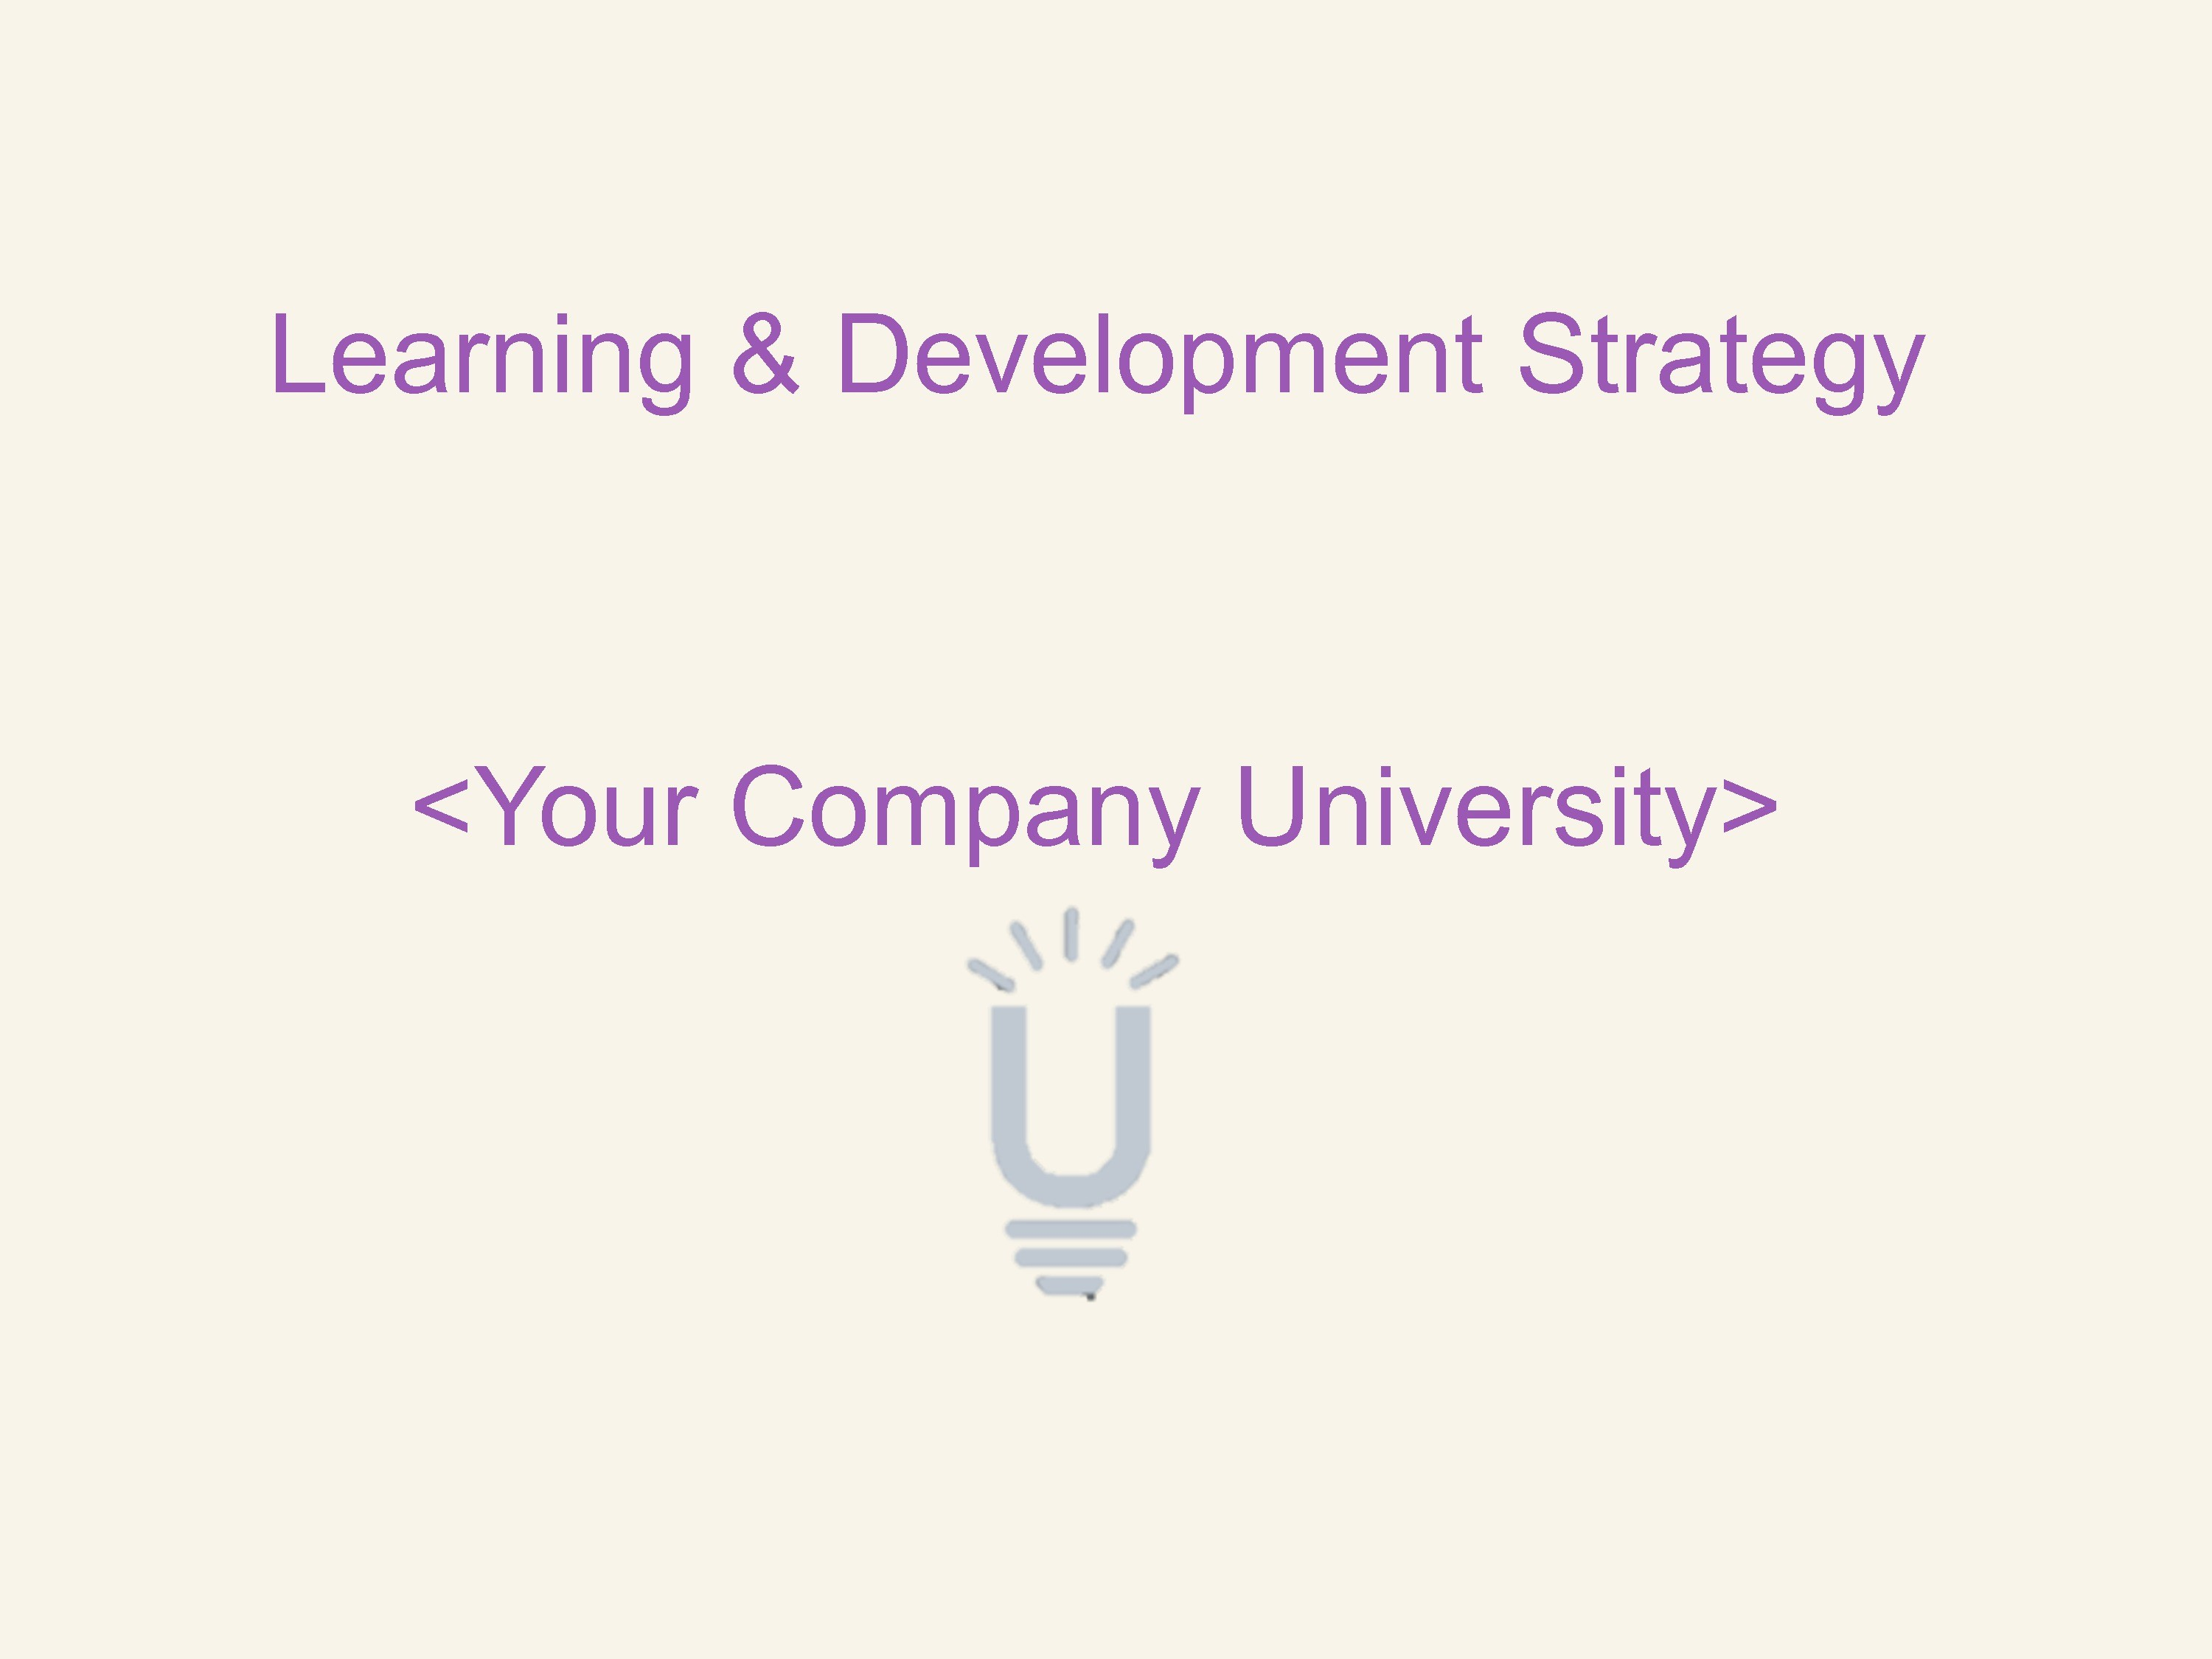 learning and development strategy For some companies, this strategy may include aspects of adaptive learning for other companies, it could mean a different communication strategy david wentworth and mollie lombardi are analysts for brandon hall group , an independent hcm research and advisory services firm that provides insights on learning and development, talent management .